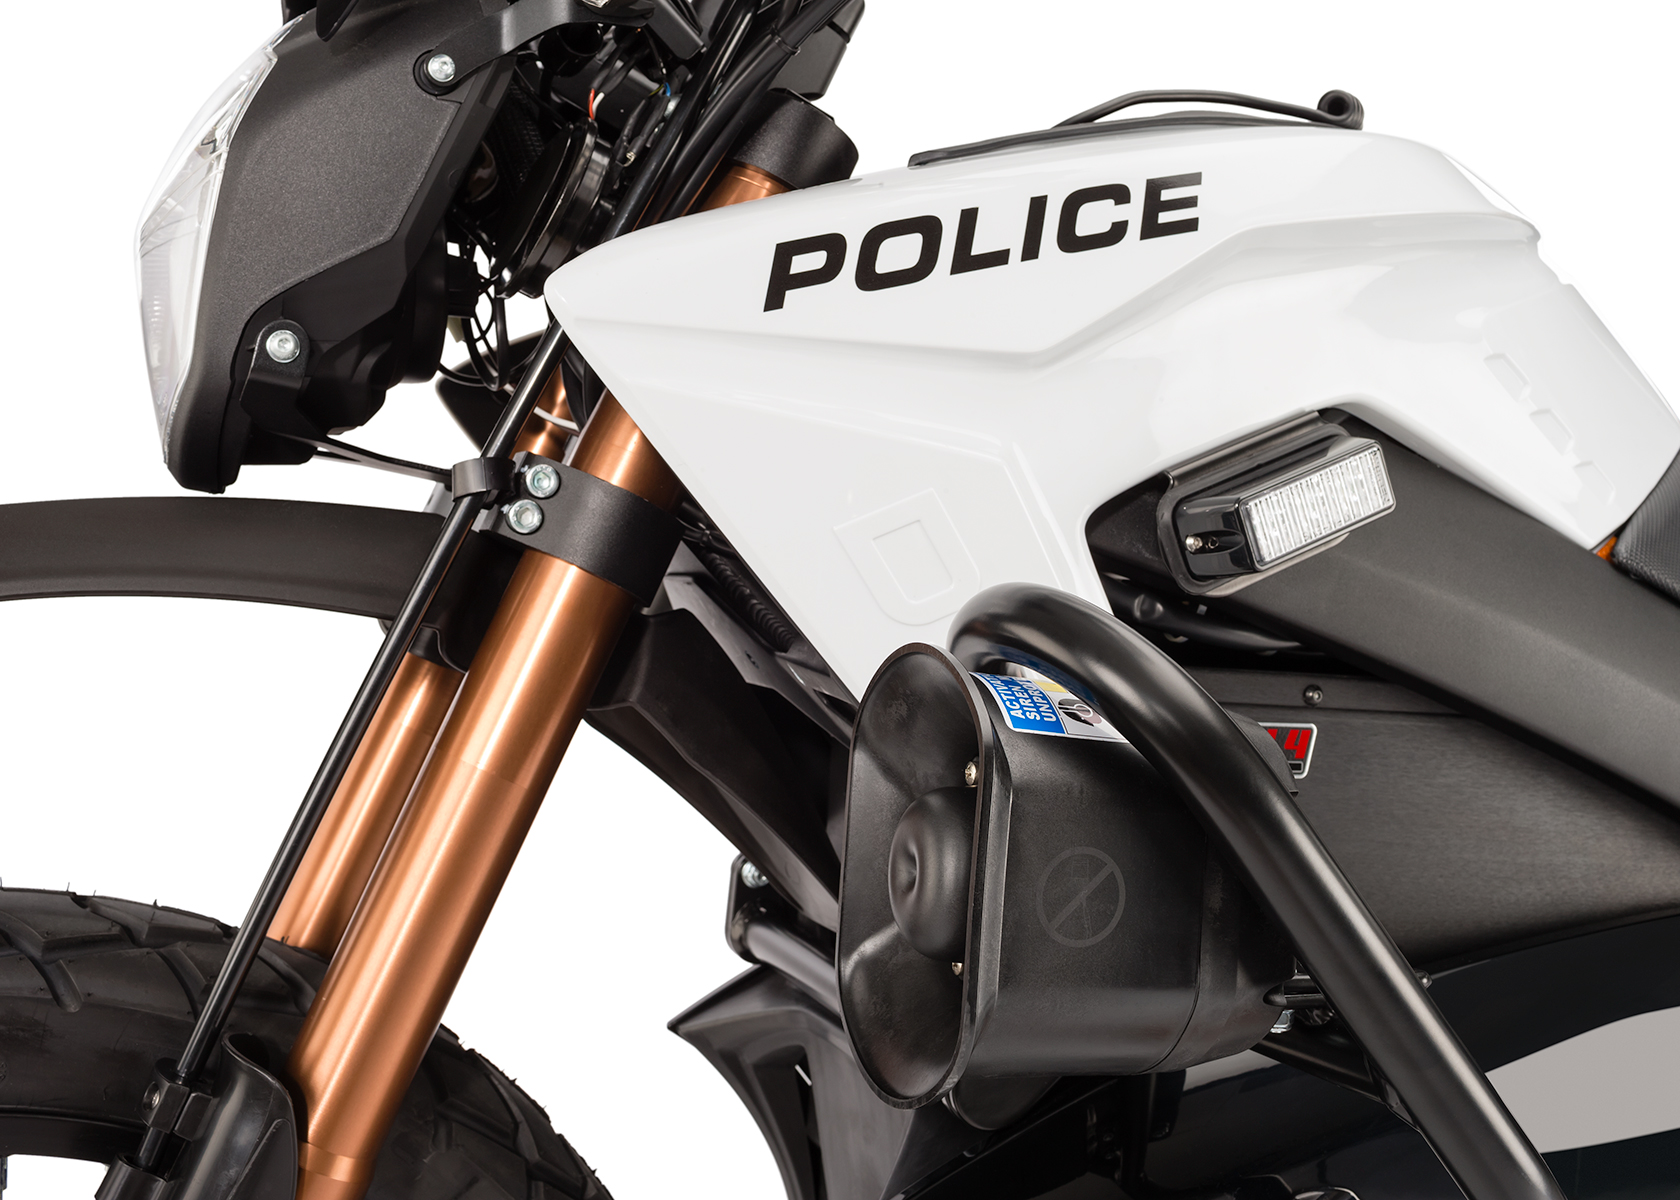 2013 Zero Police Electric Motorcycle: Side light, Siren